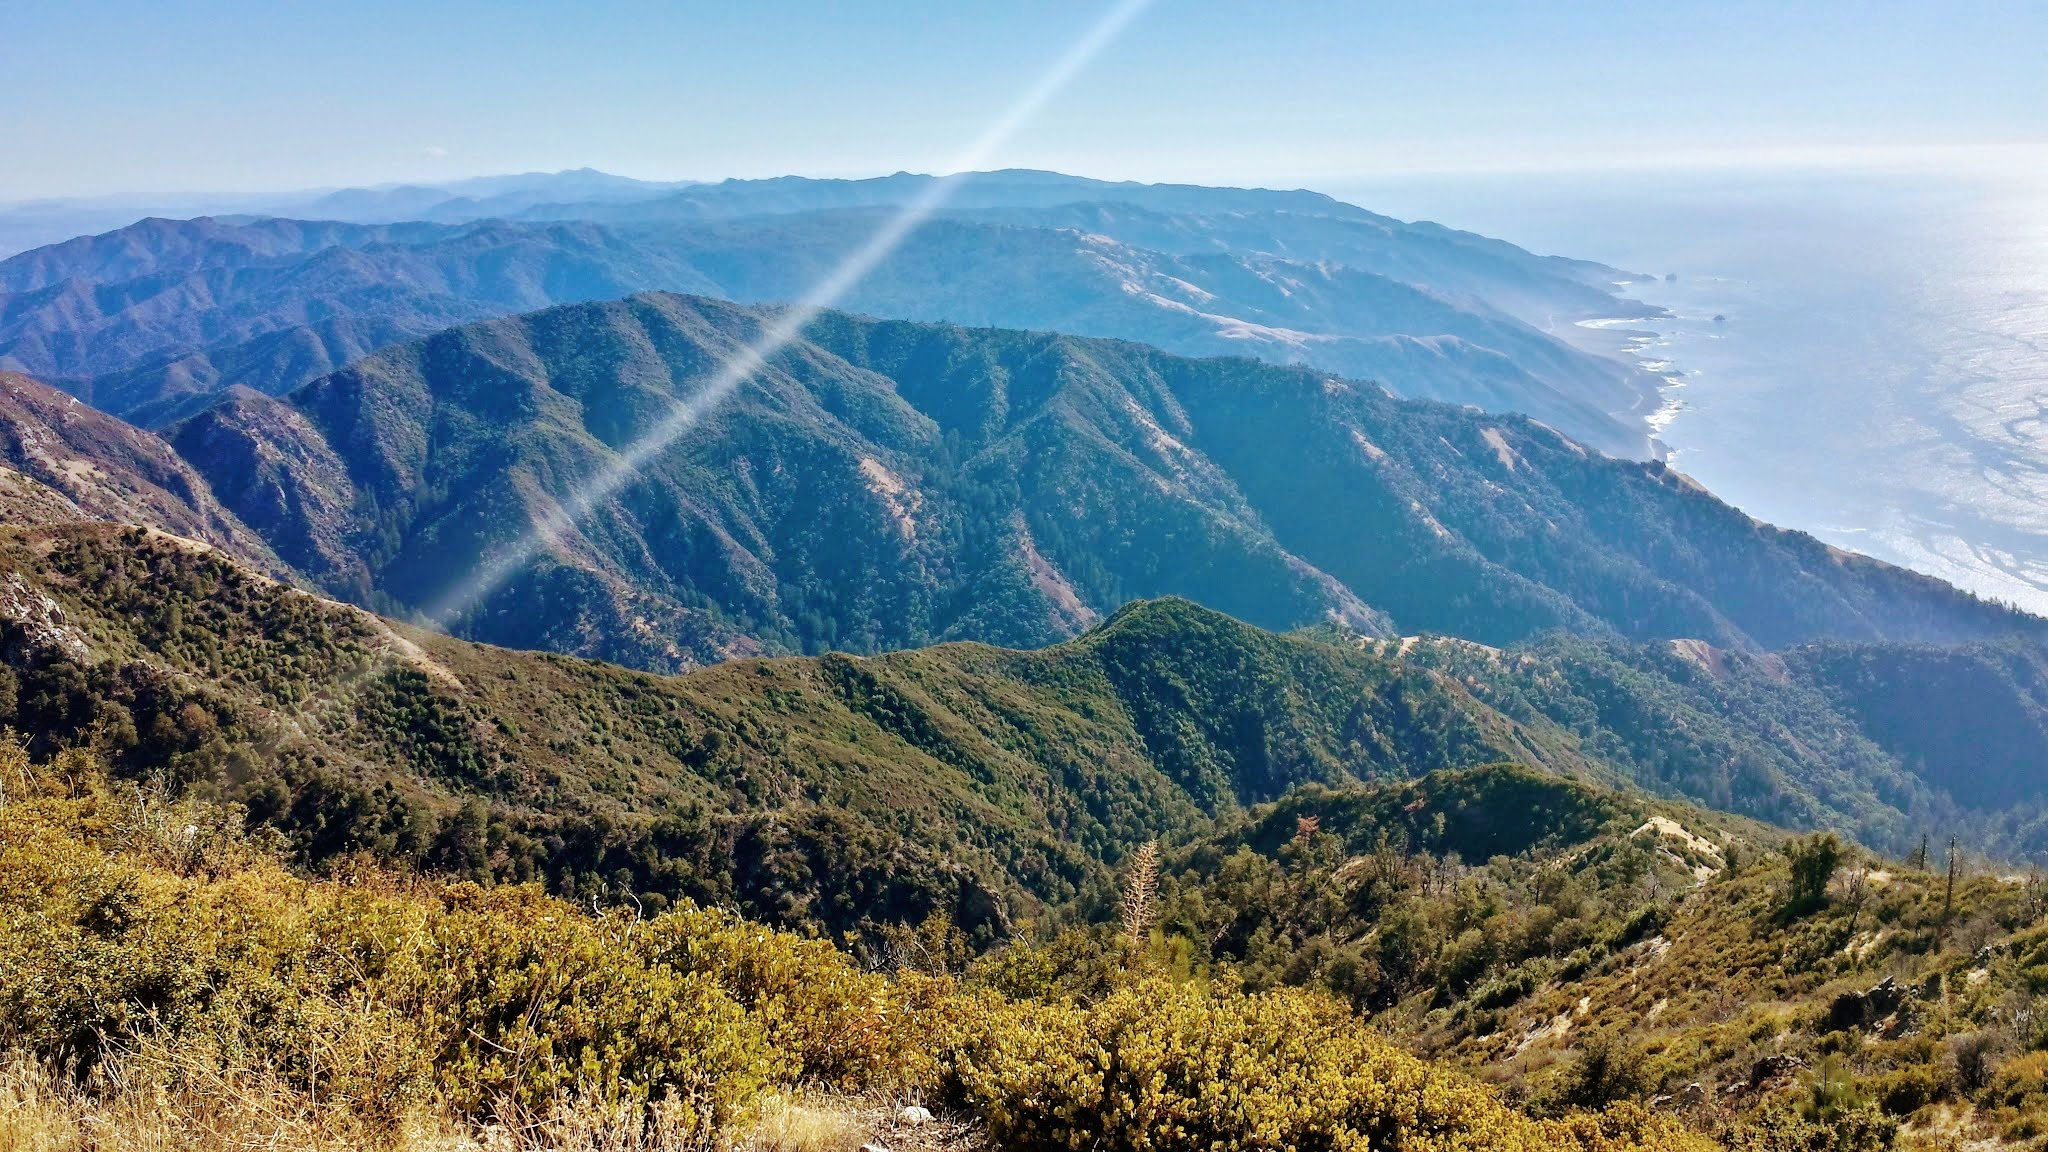 View of coastal mountains from Cone Peak in Big Sur